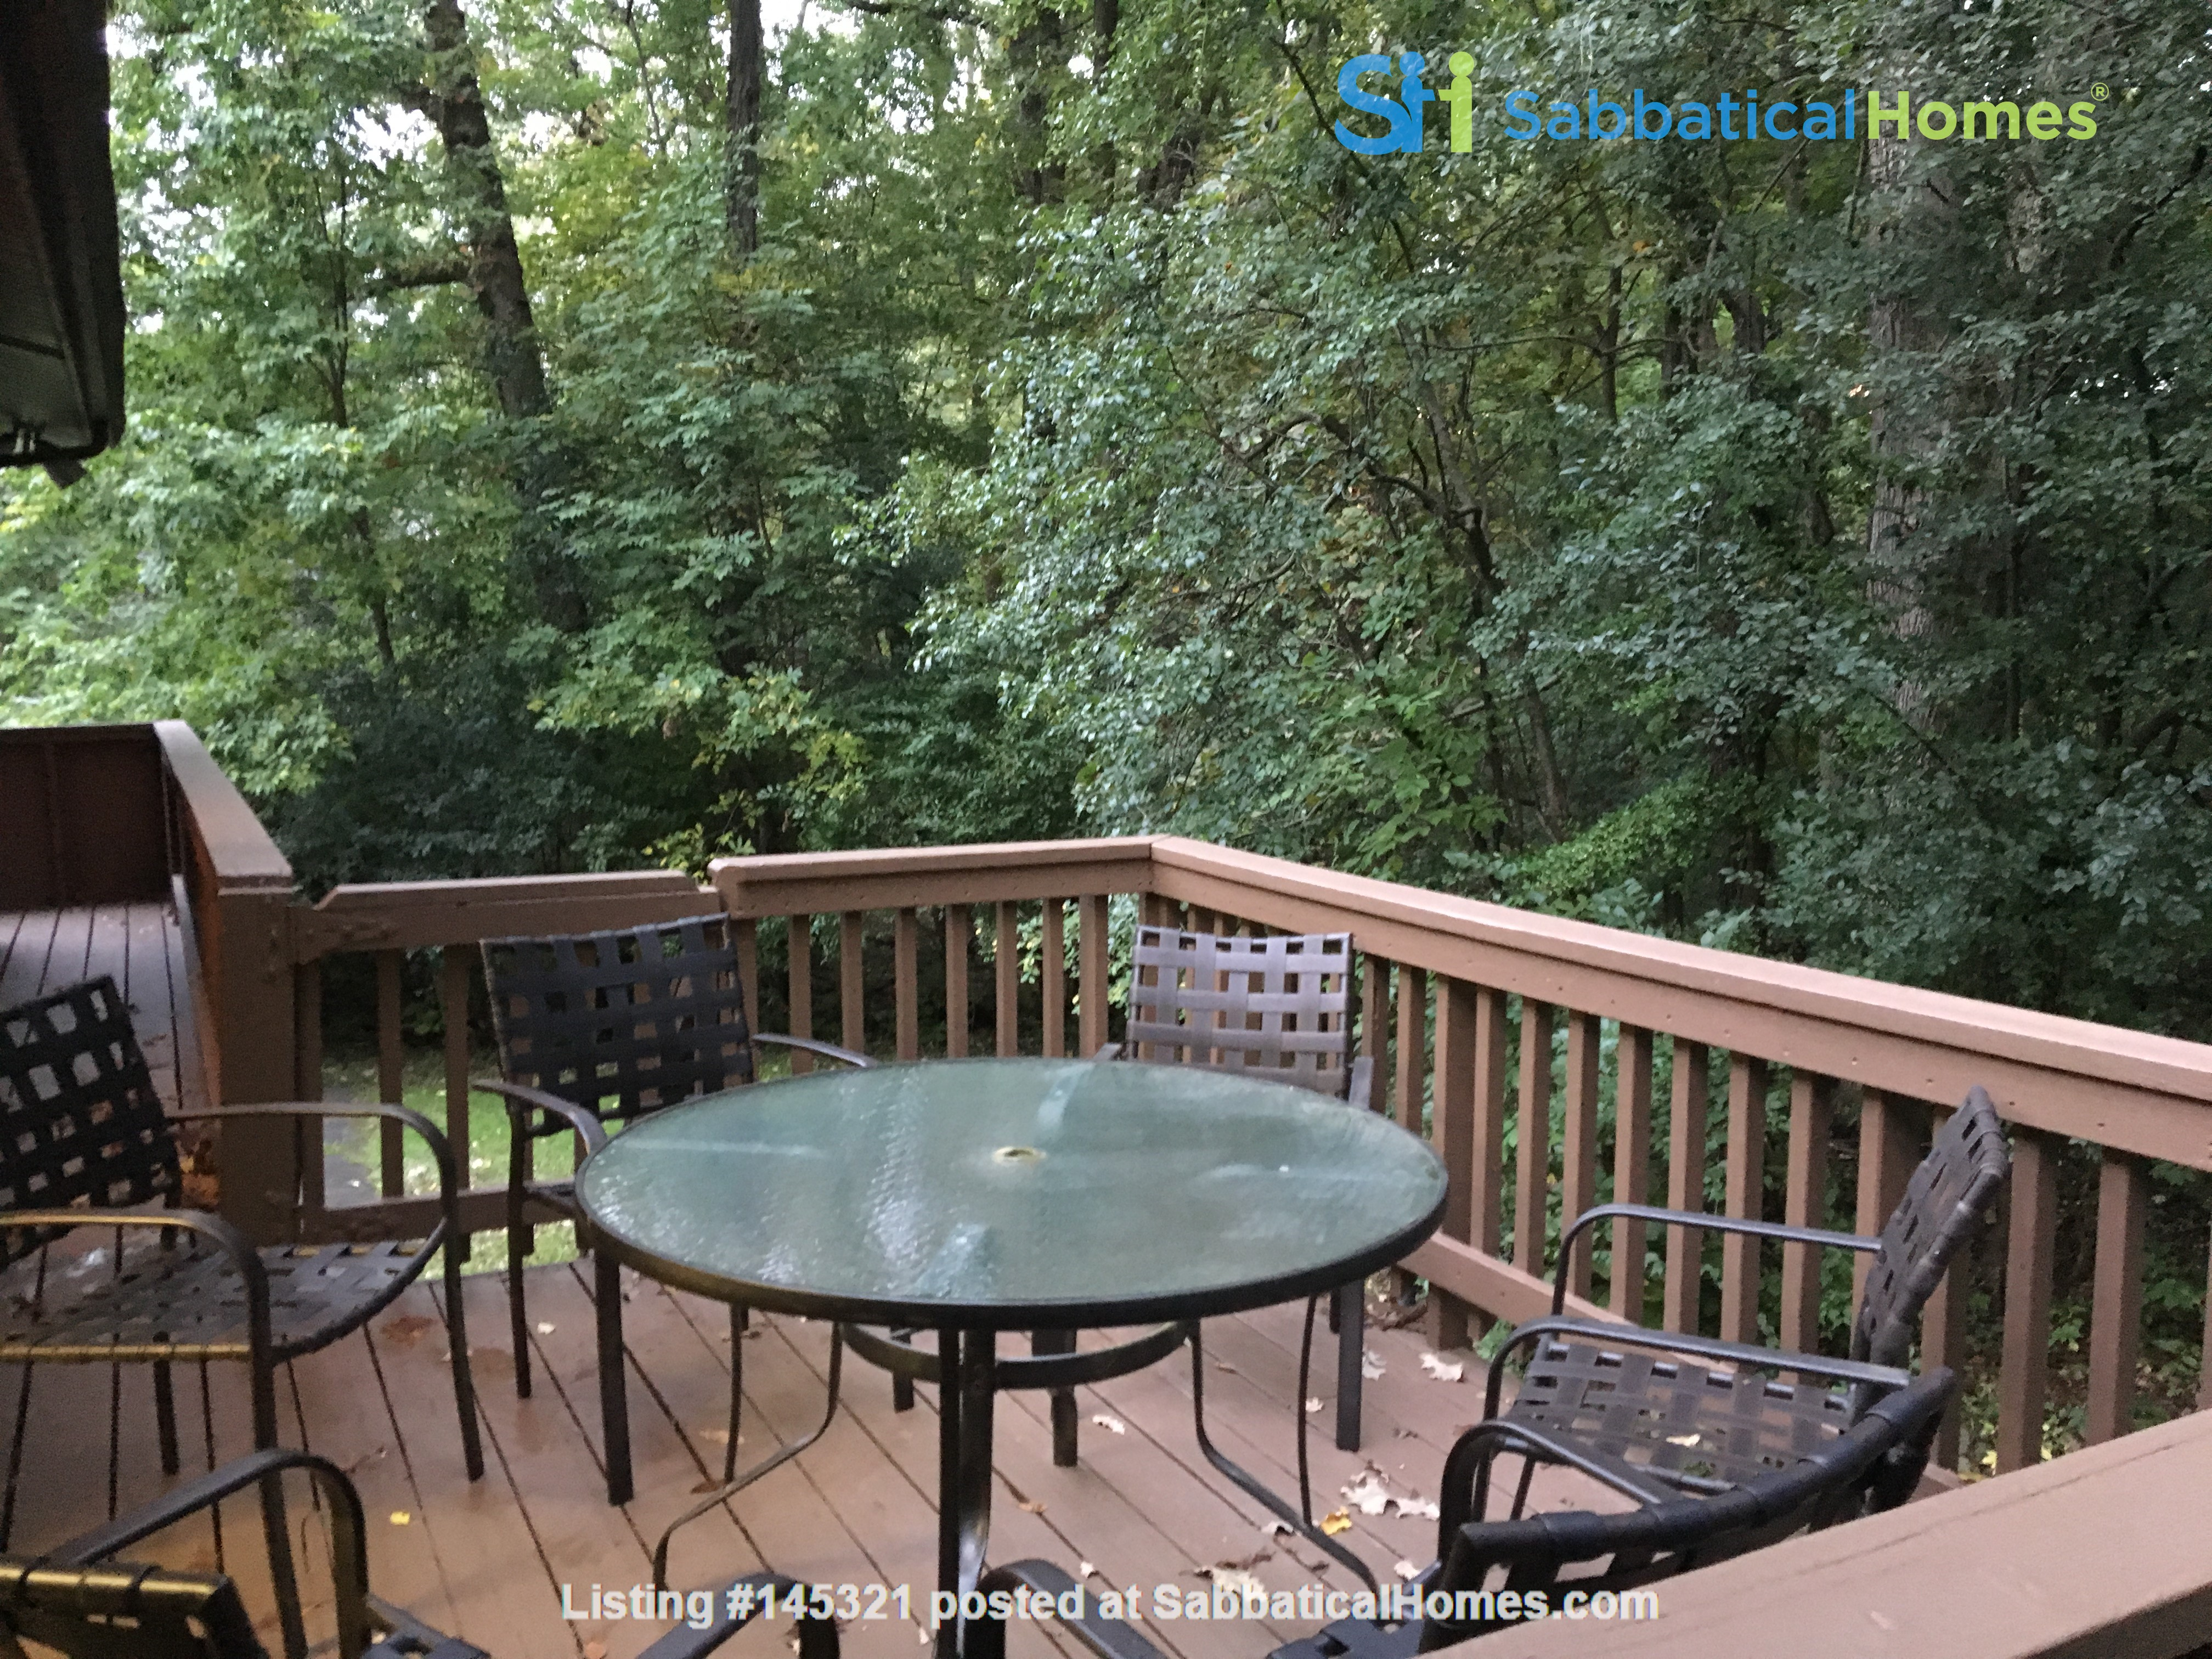 Lovely four bedroom house, wooded setting near UM Central campus & hospital Home Rental in Ann Arbor, Michigan, United States 3